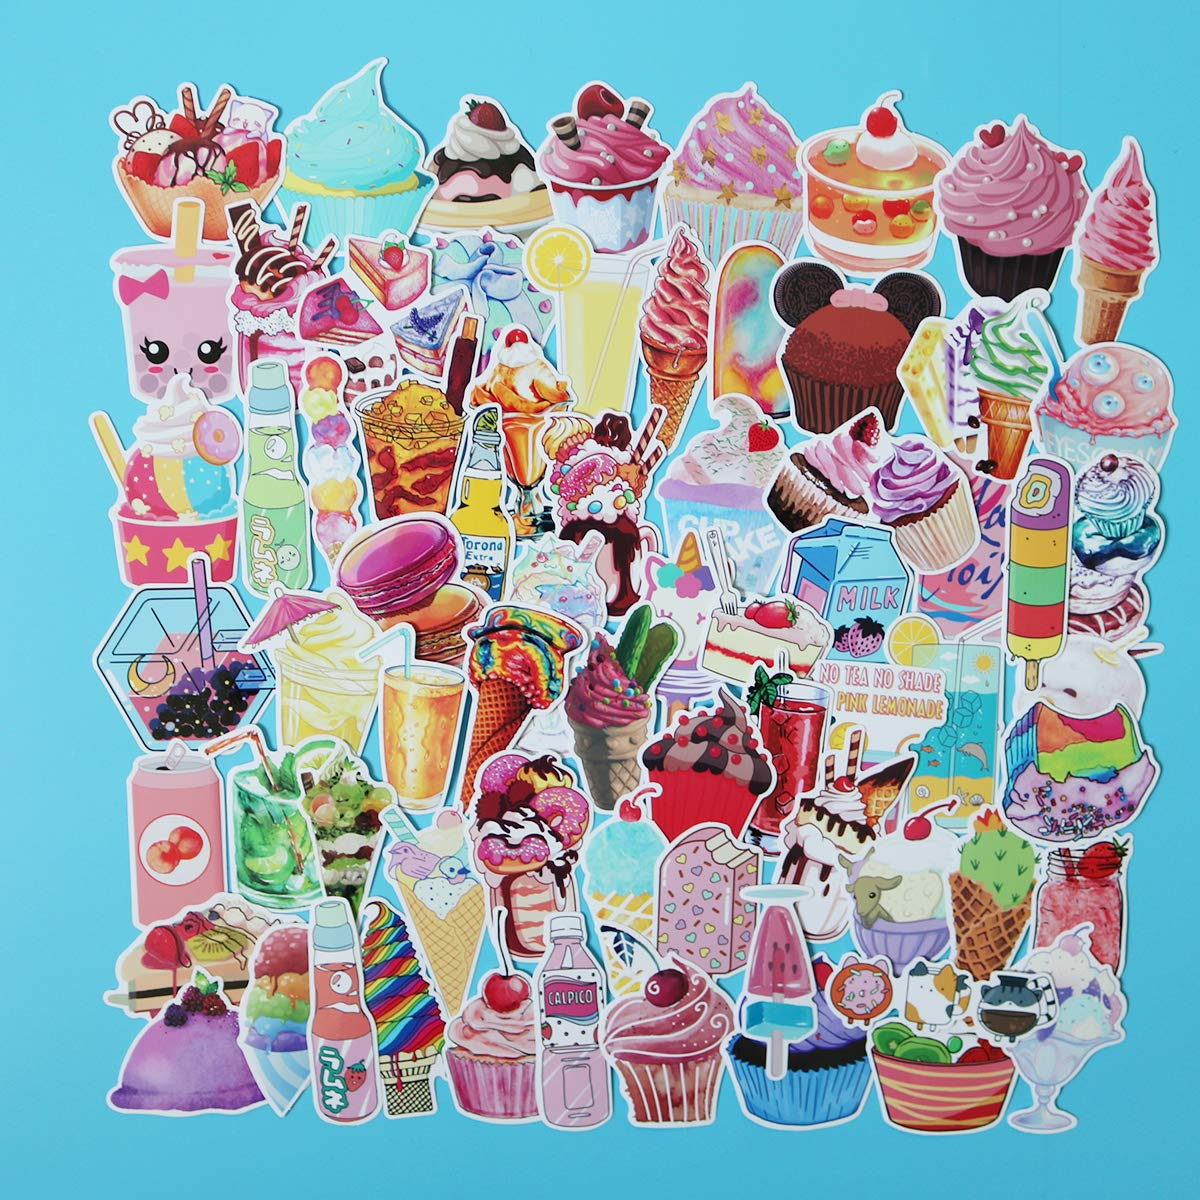 Girl Cute Ice Cream Laptop Stickers Water Bottle Skateboard Motorcycle Phone Bicycle Luggage Guitar Bike Sticker Decal 70pcs Pack (Ice Cream)